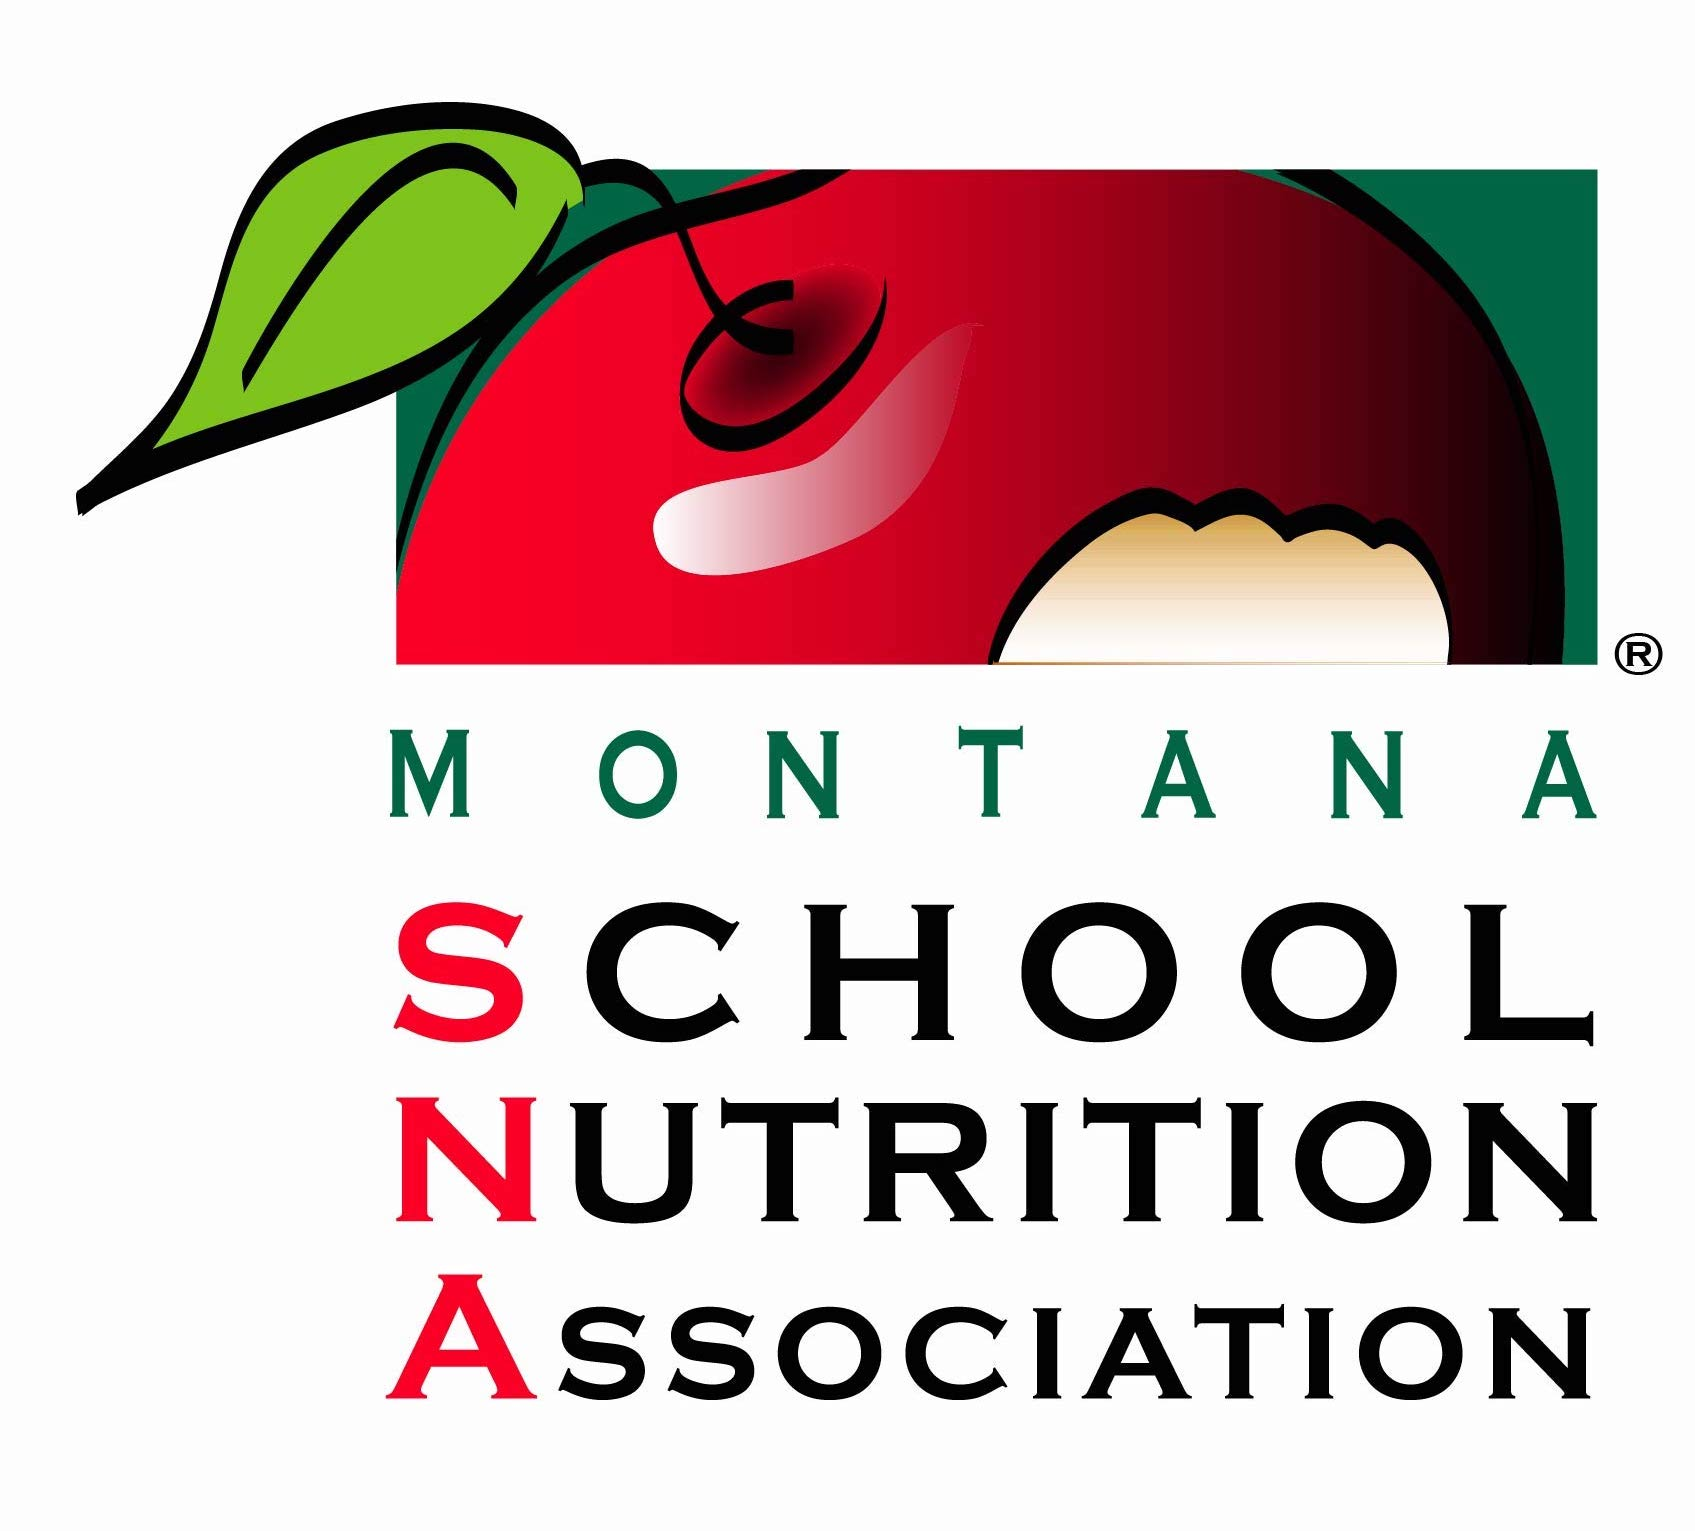 Montana School Nutrition Association logo